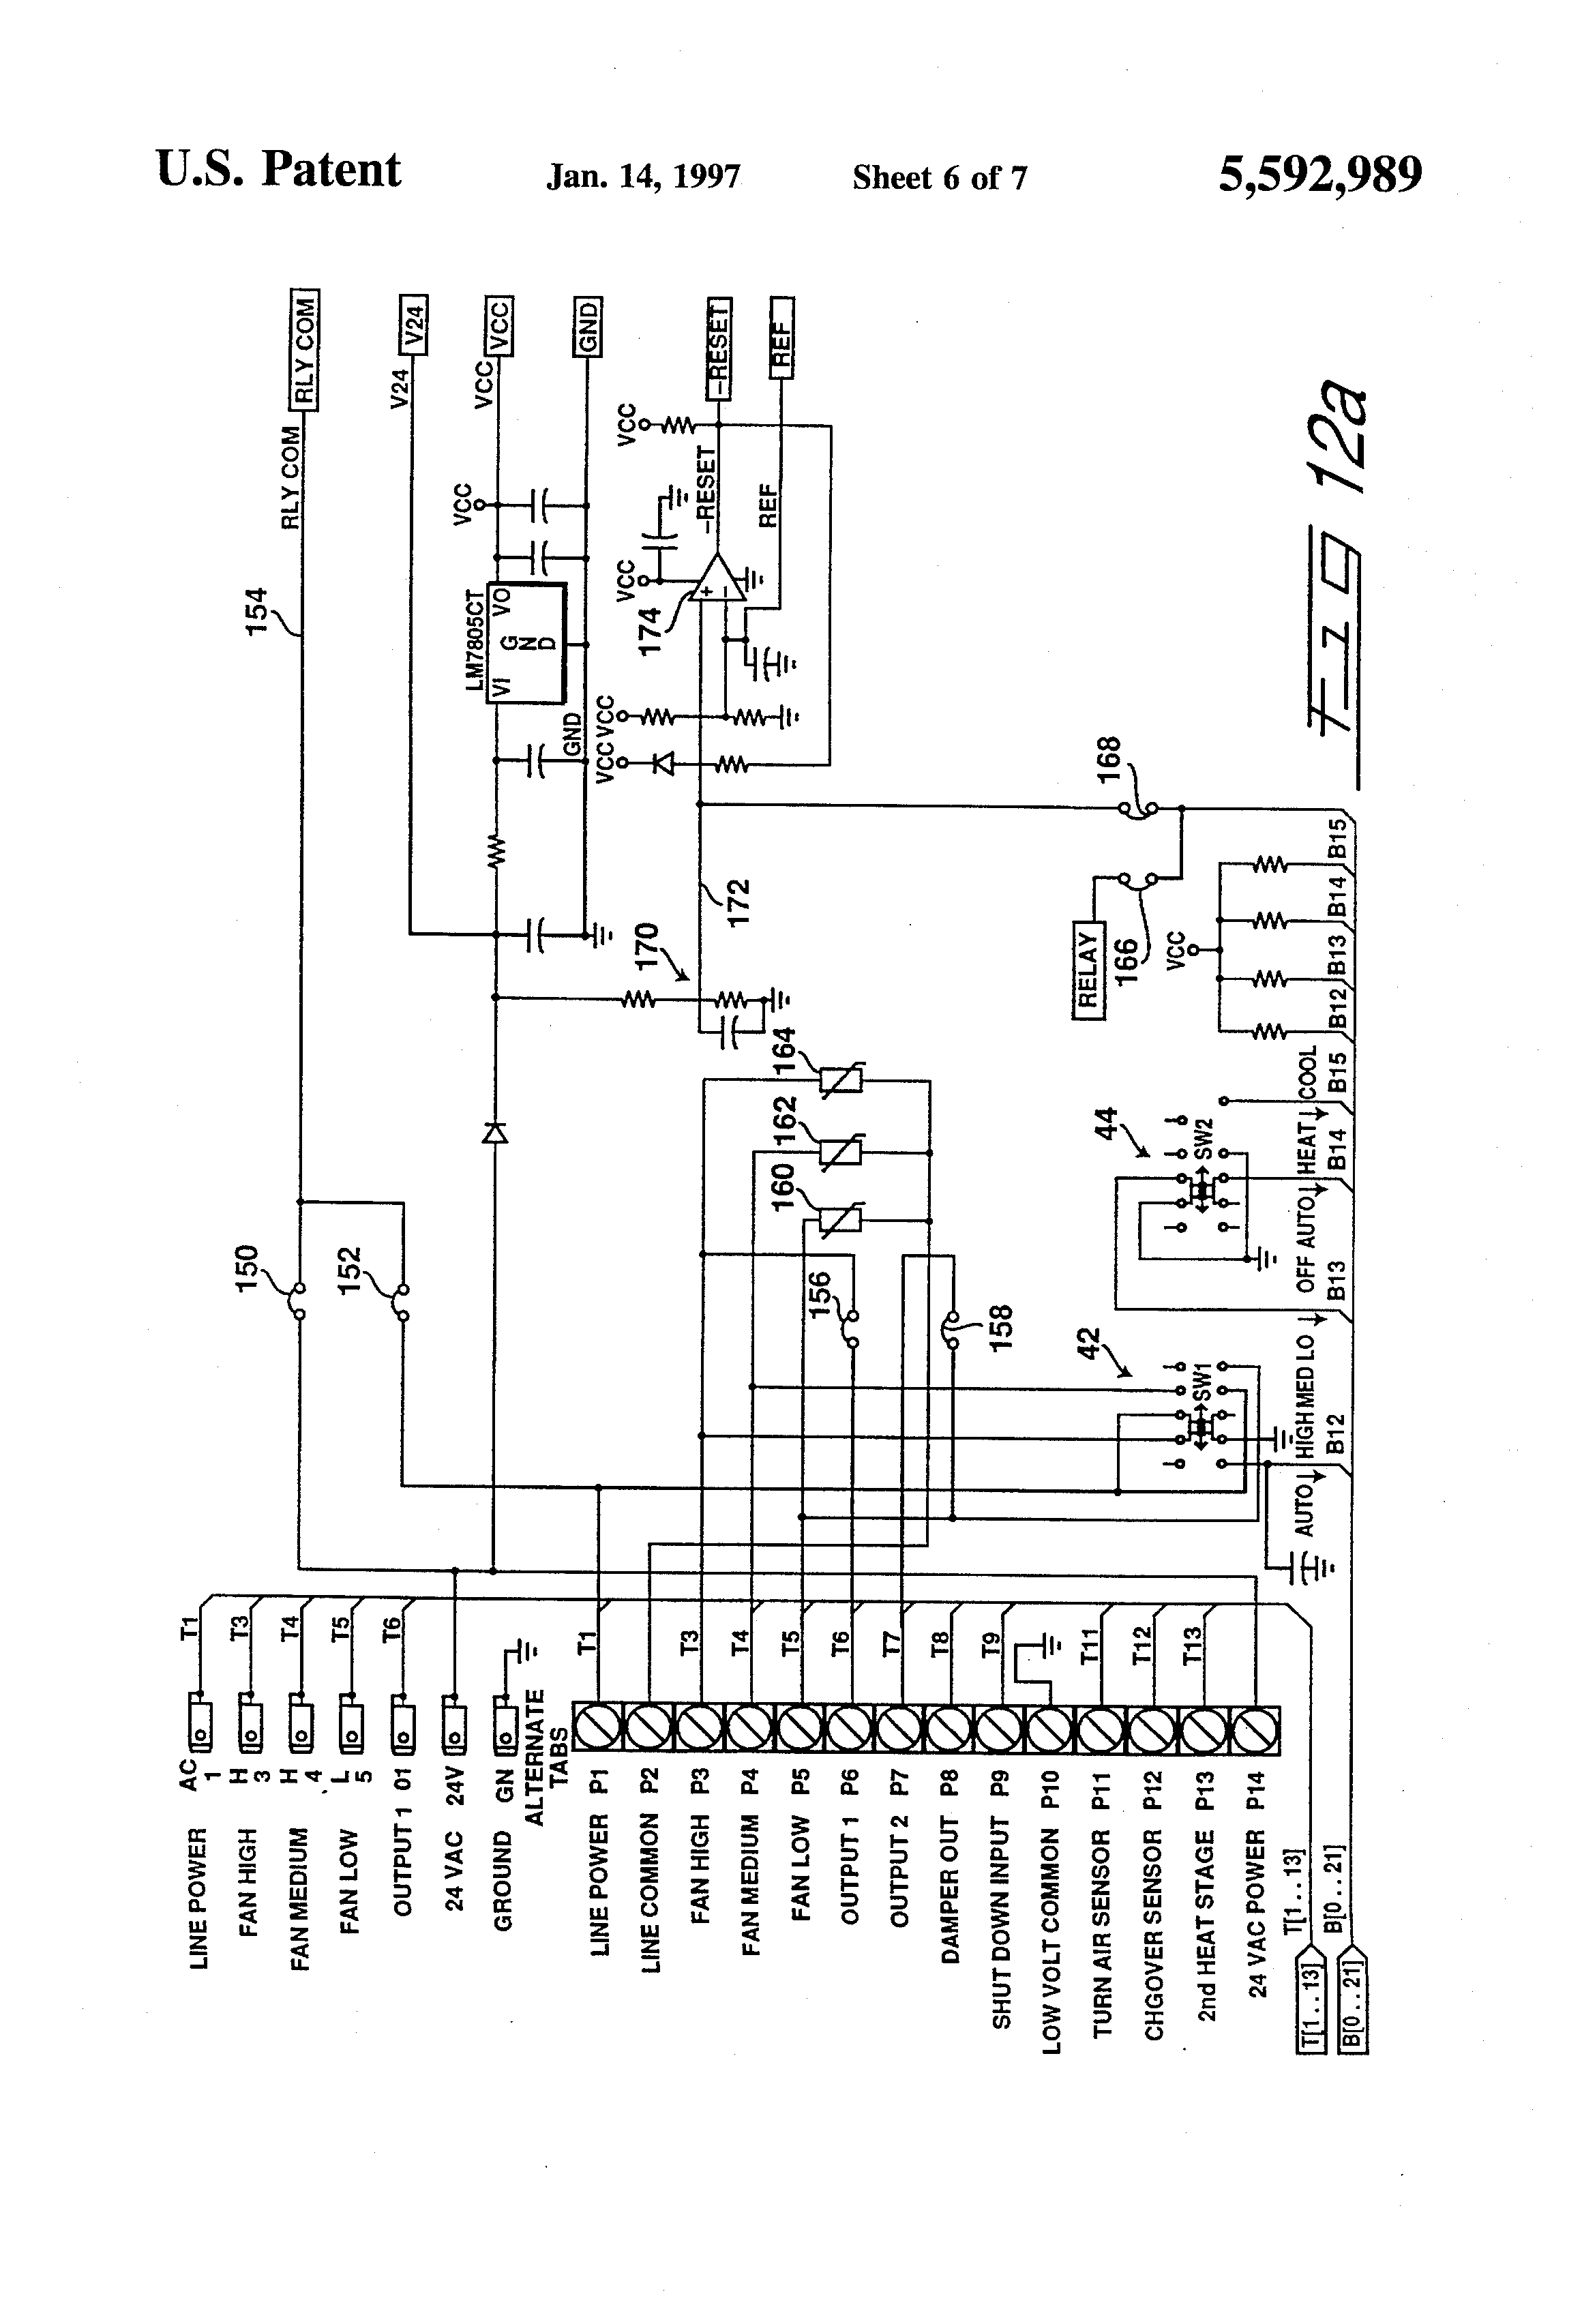 US5592989 6 patent us5592989 electronic thermostat having high and low fcu control wiring diagram at pacquiaovsvargaslive.co